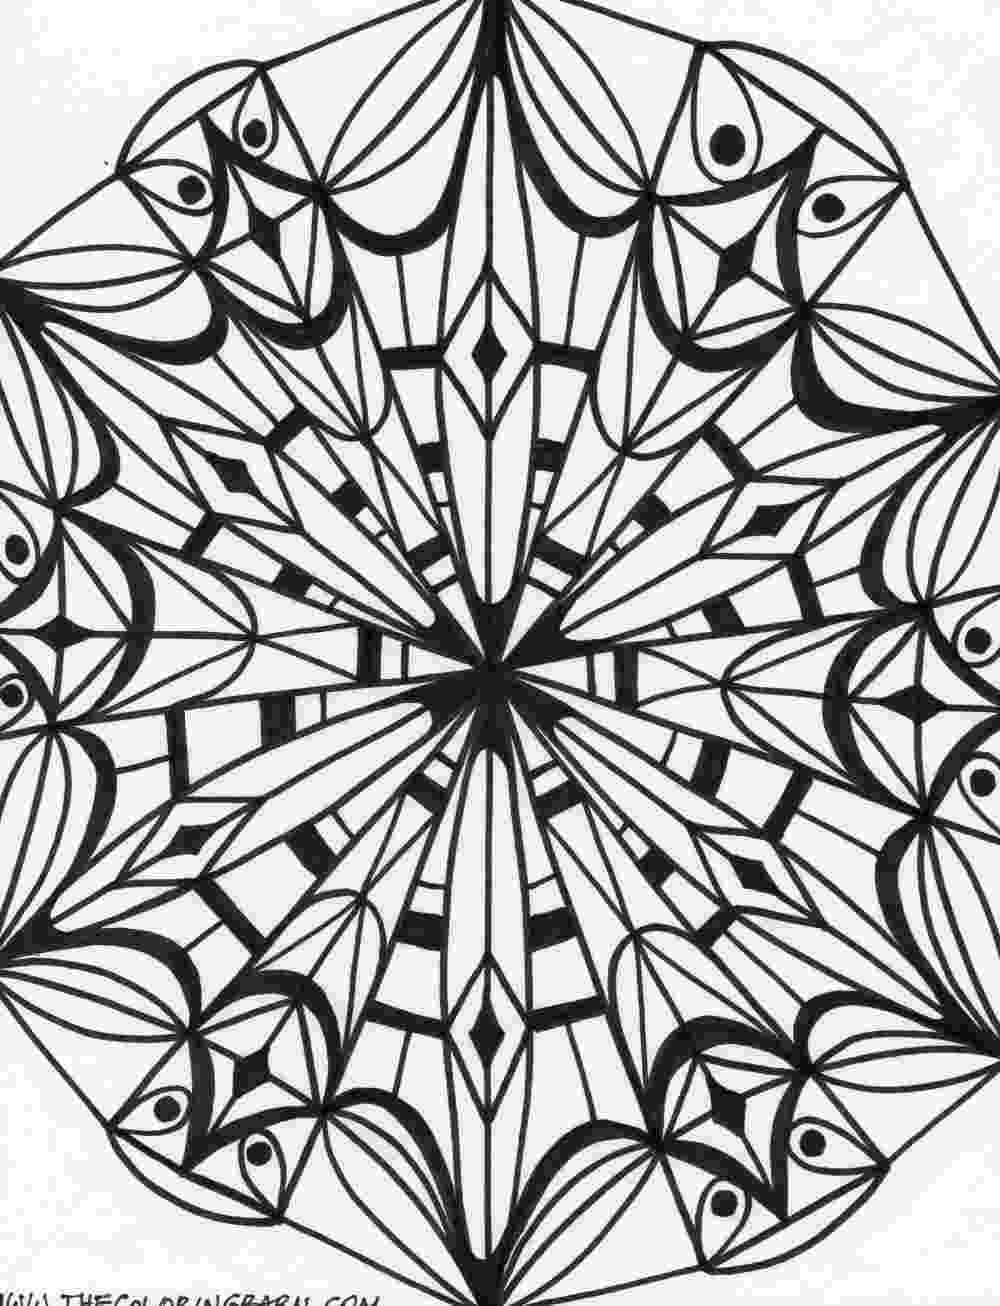 kaleidoscope colouring patterns 1000 images about printables on pinterest dover kaleidoscope patterns colouring